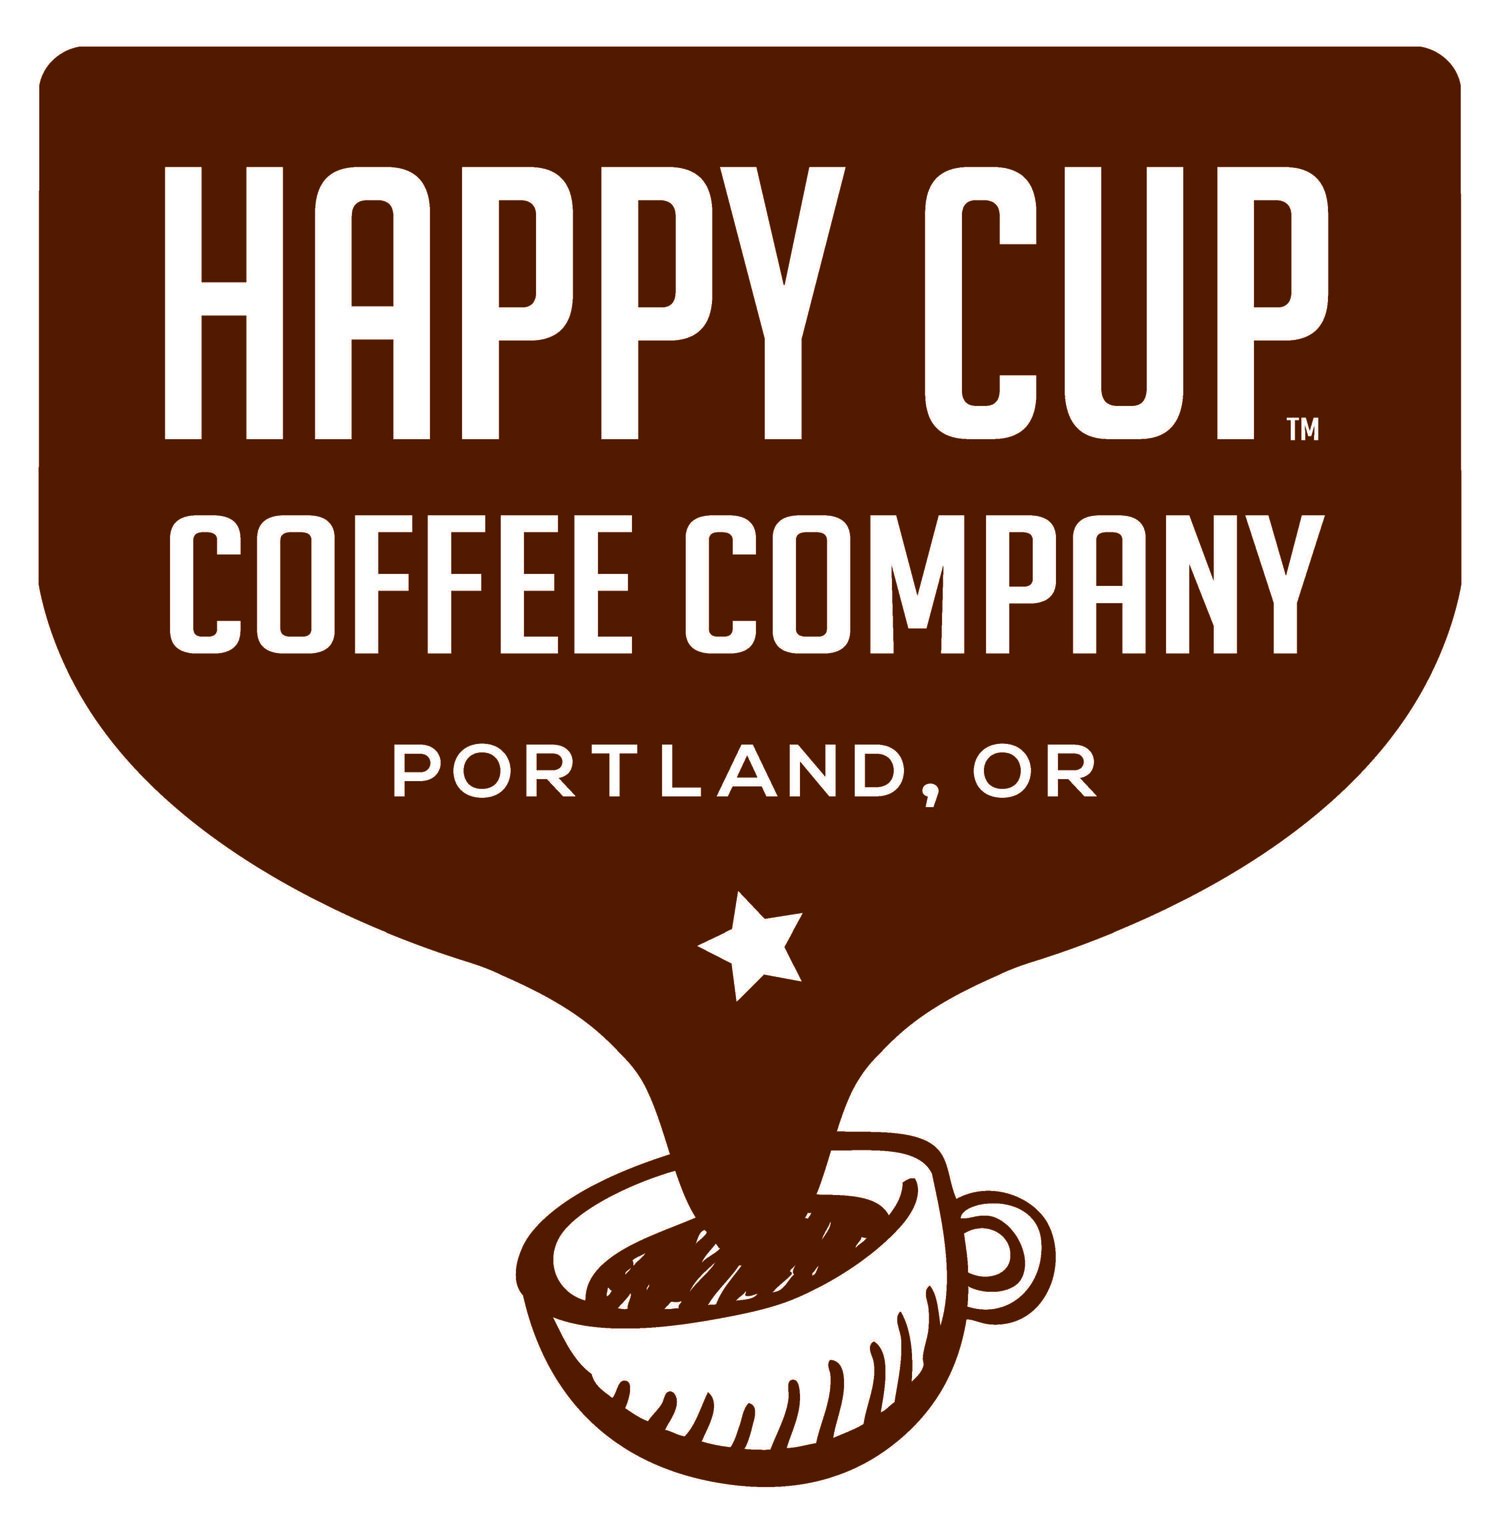 Happy Cup Coffee Company